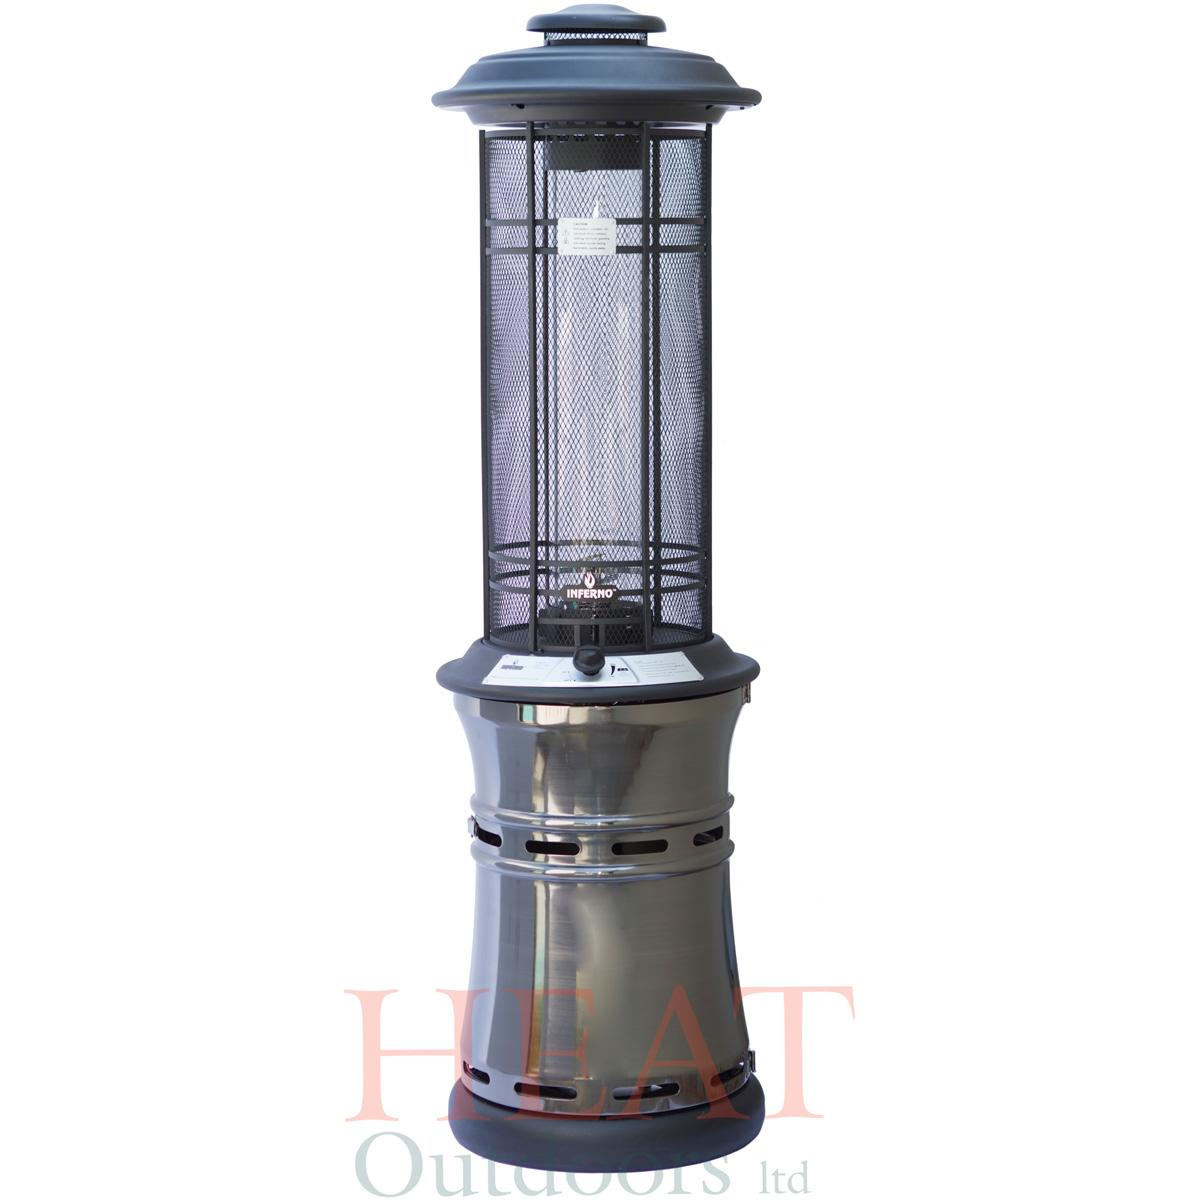 Santorini spiral flame gas patio heater heat outdoors Patio products